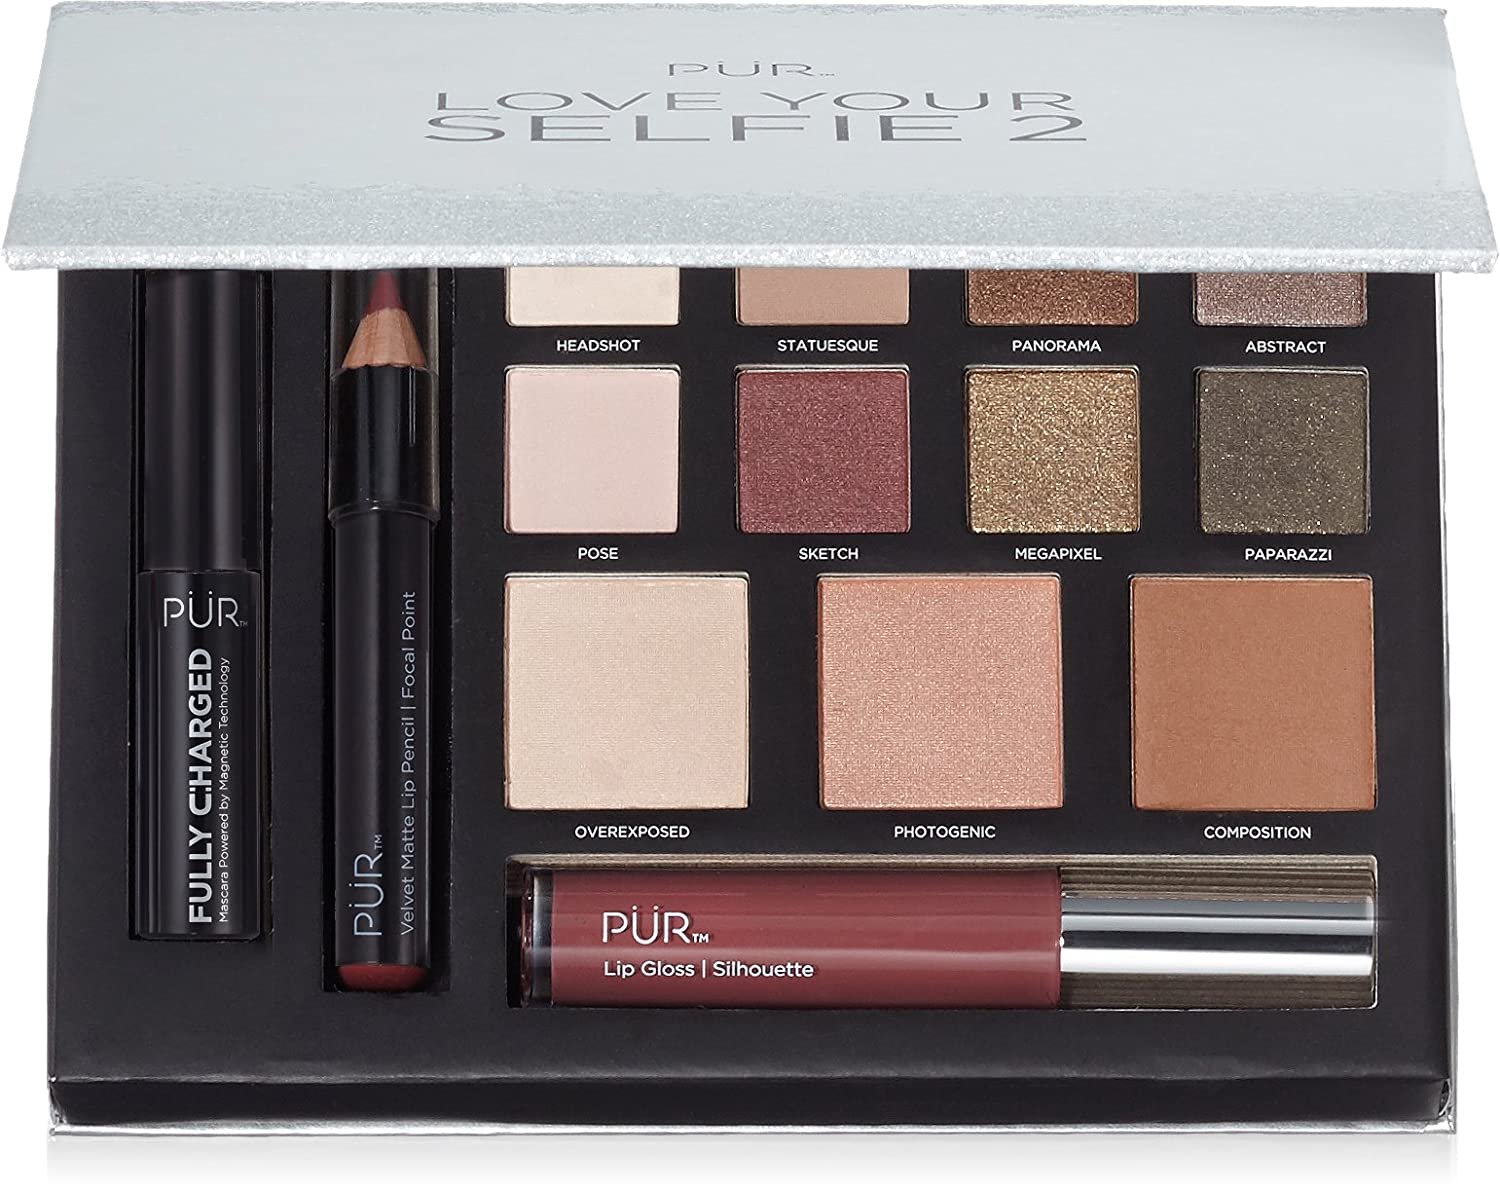 PÜR Love Your Selfie 2 Makeup Palette